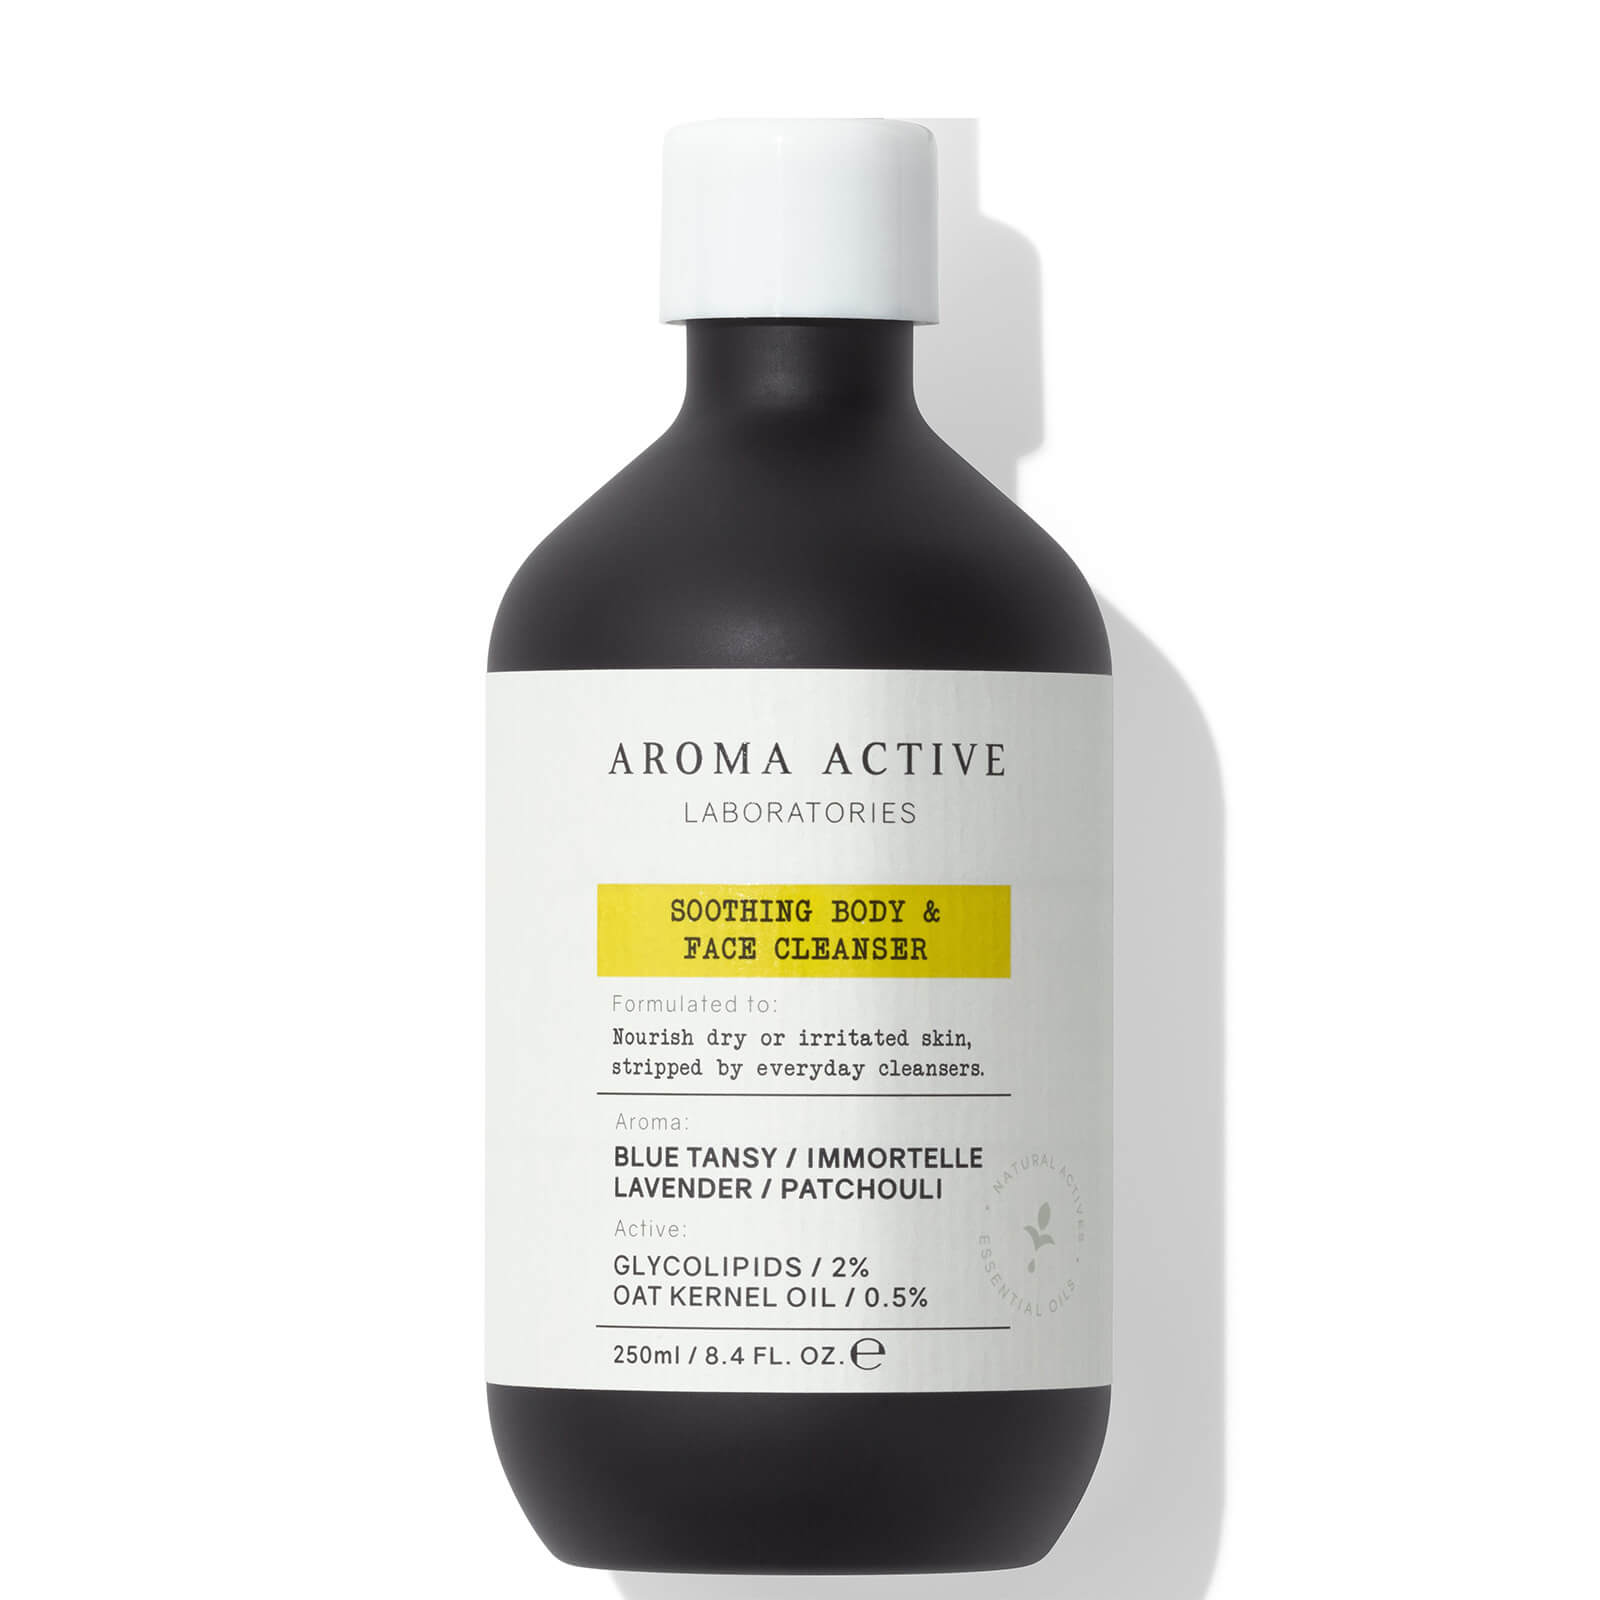 Купить Aroma Active Soothing Body and Face Cleanser 250ml